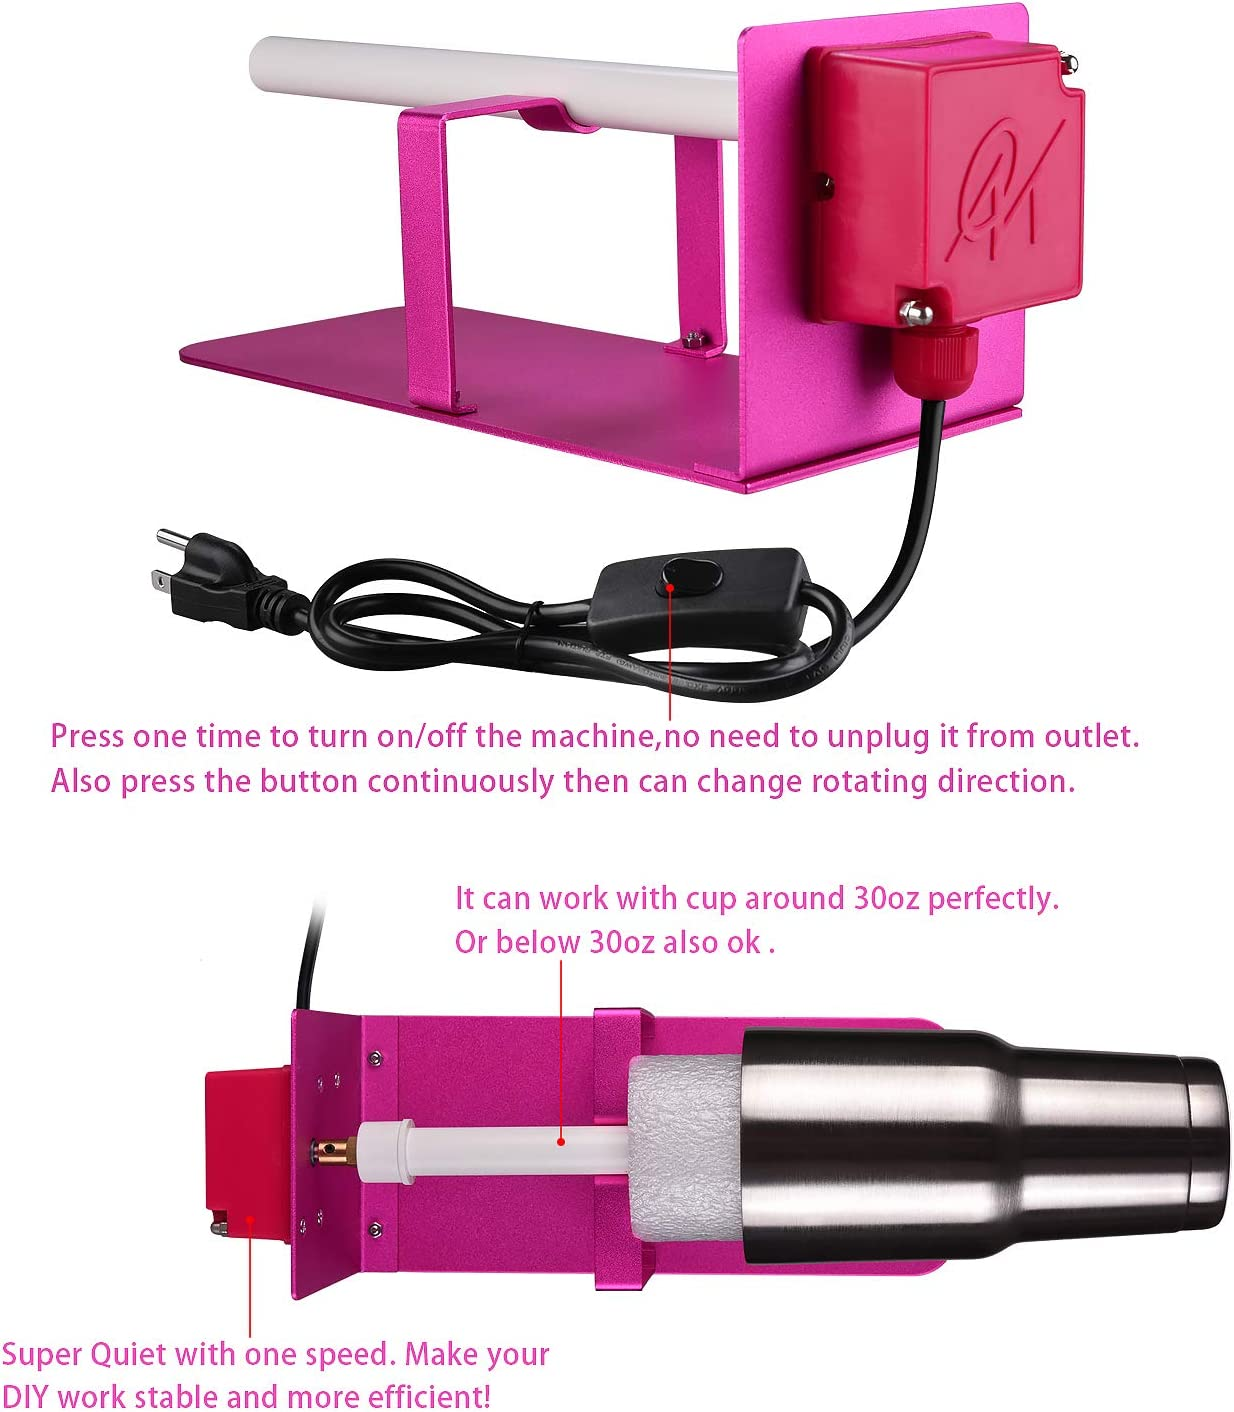 Cup Turner Spinner,Pink Metal Cup Tumbler Turner Machine for DIY Epoxy Cup Turner Supplies Crafts Tumbler with Certified Power Supply and Extra Silicone Epoxy Brush /…